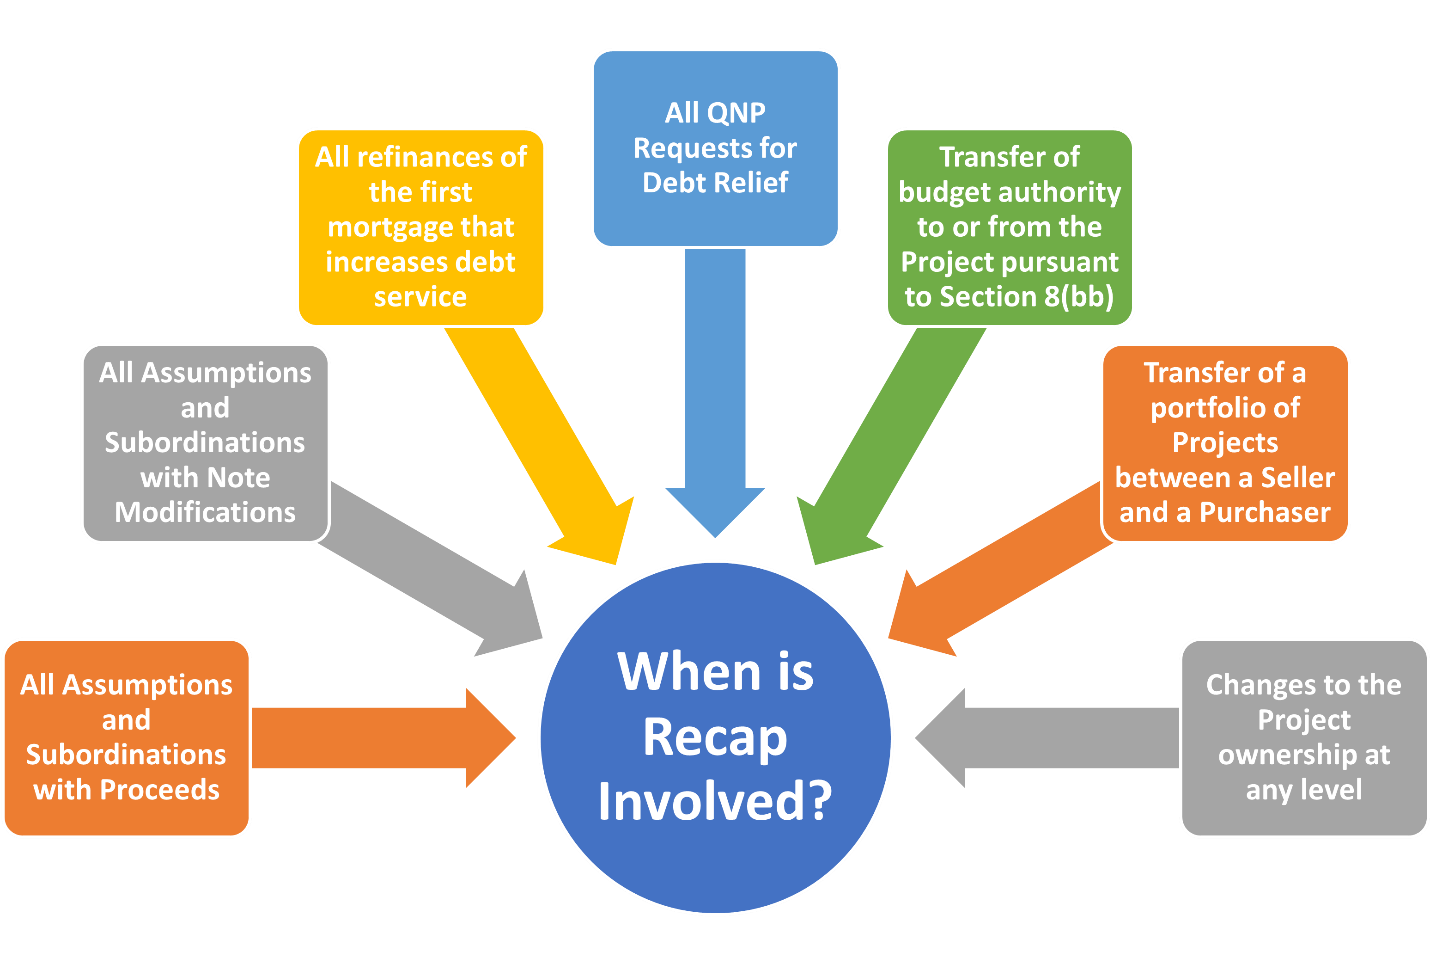 Diagram: Post Mark-to-Market scenarios when Recap gets involved, Colors are orange, yellow, blue, green and gray with white writing.